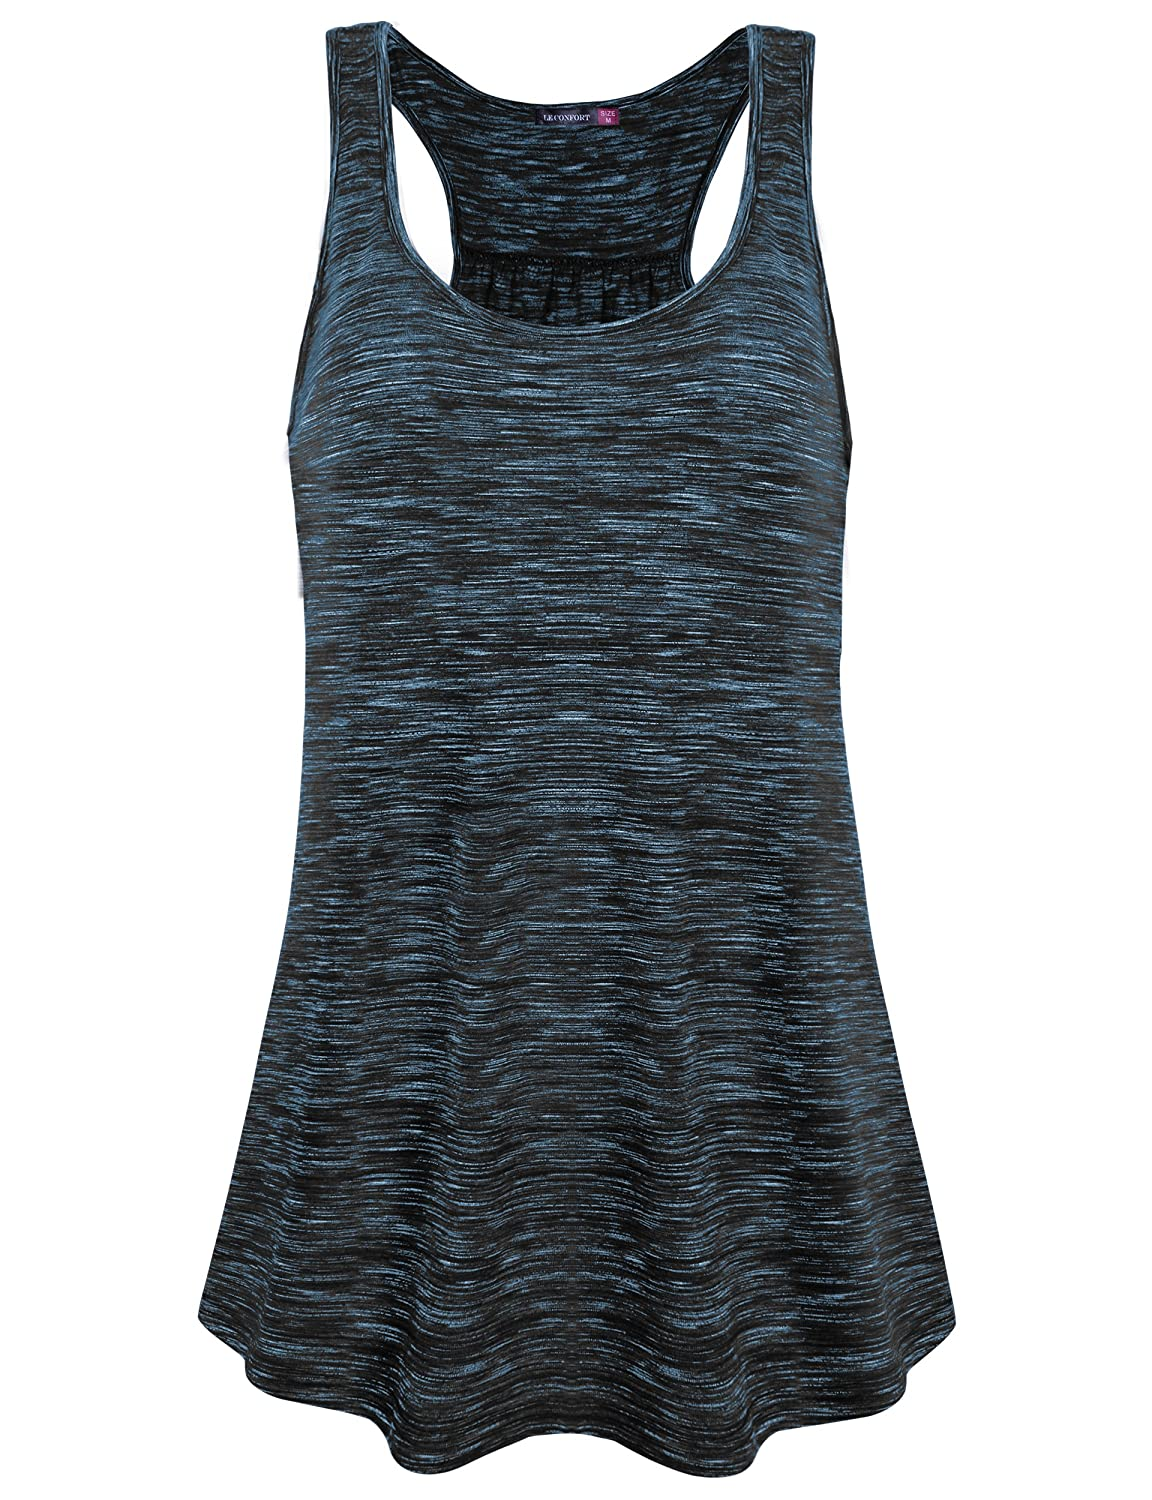 f6f83dbaf5 Bust: (M) 35.5 inches (L) 37.8 inches (XL) 40.3 inches (XXL) 43.1 inches.  If you are looking for a summer blouse, this sport style tank top ...